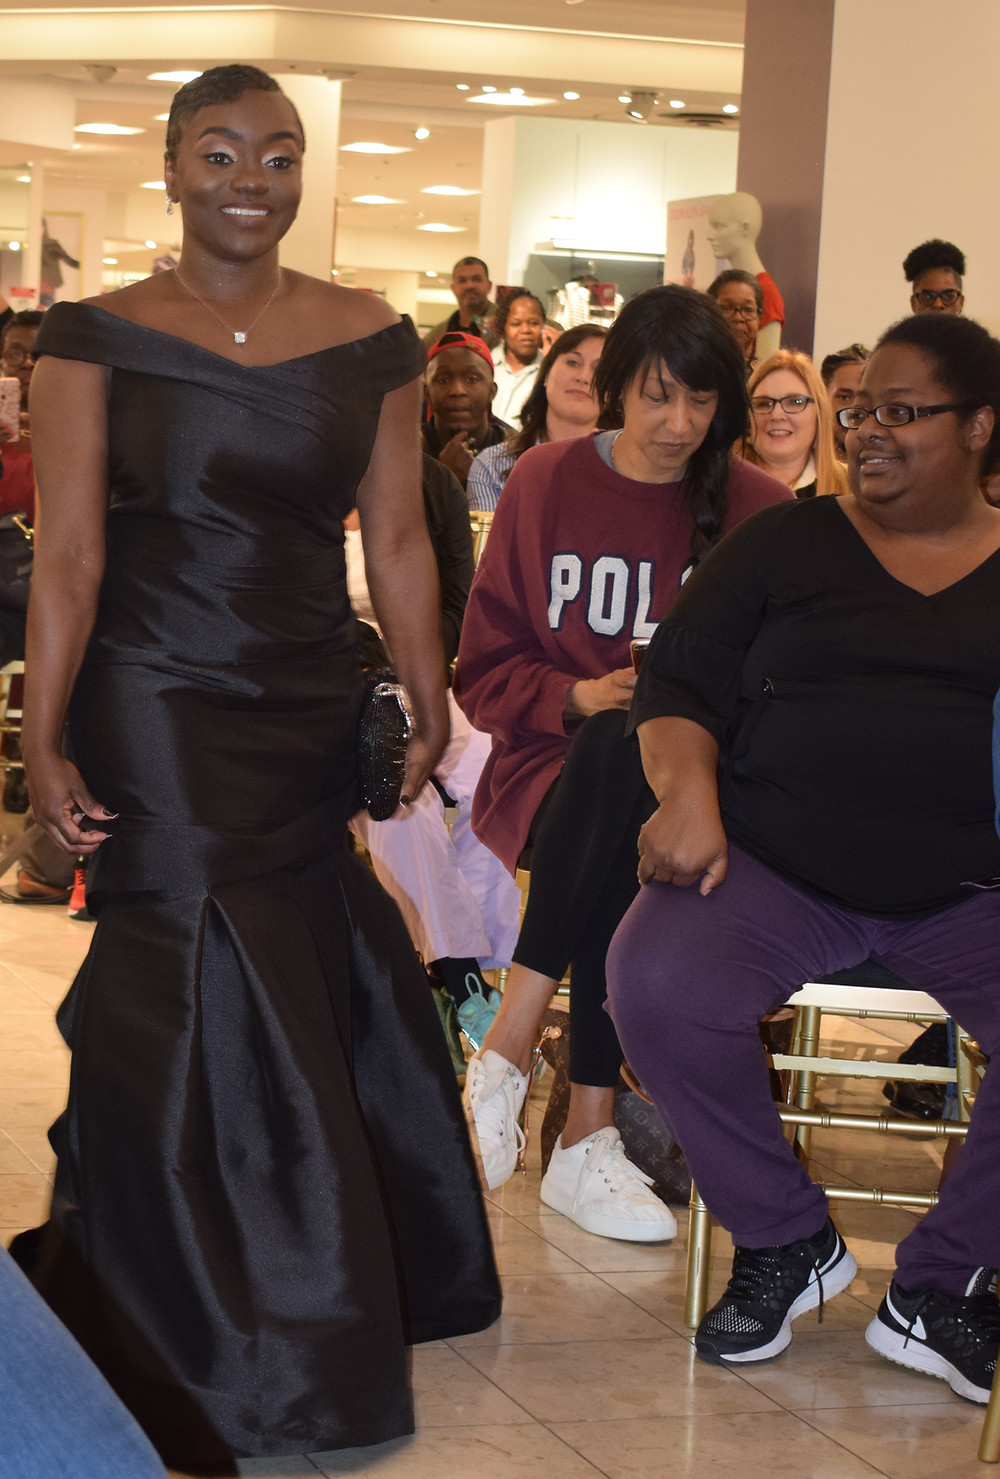 Macy's Black History Month Celebration in Atlanta at Lenox Mall; KD Reynolds Fashion Inspired by Michelle Obama